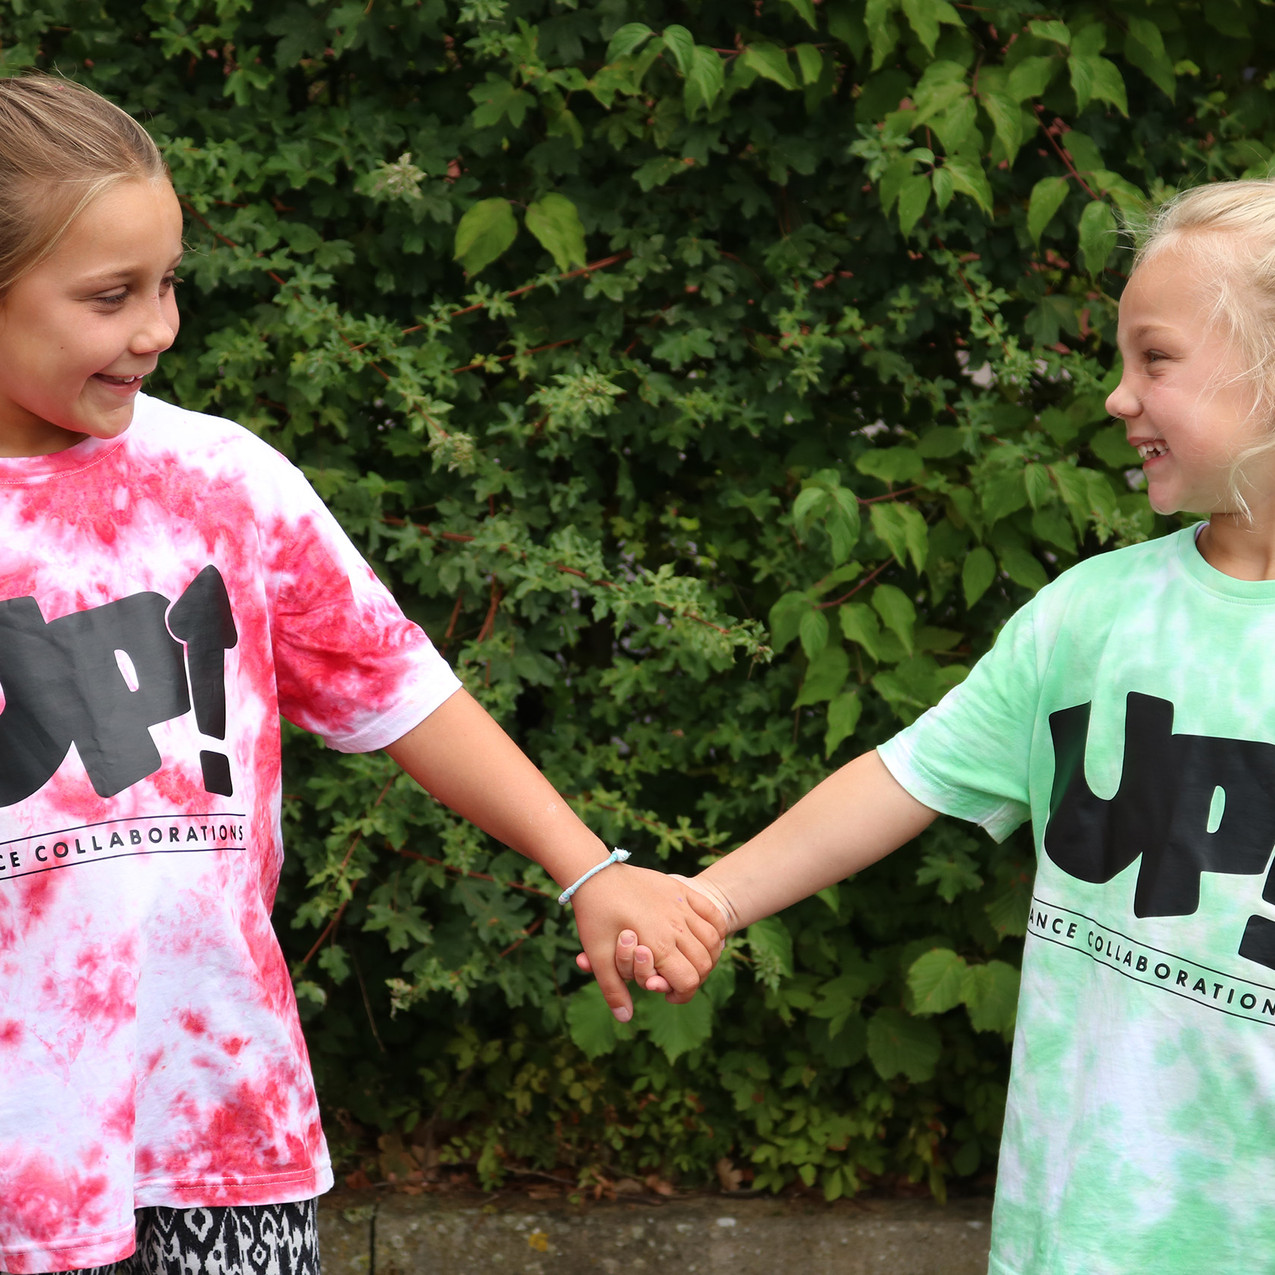 UP! Dance Tie Dye Clothing